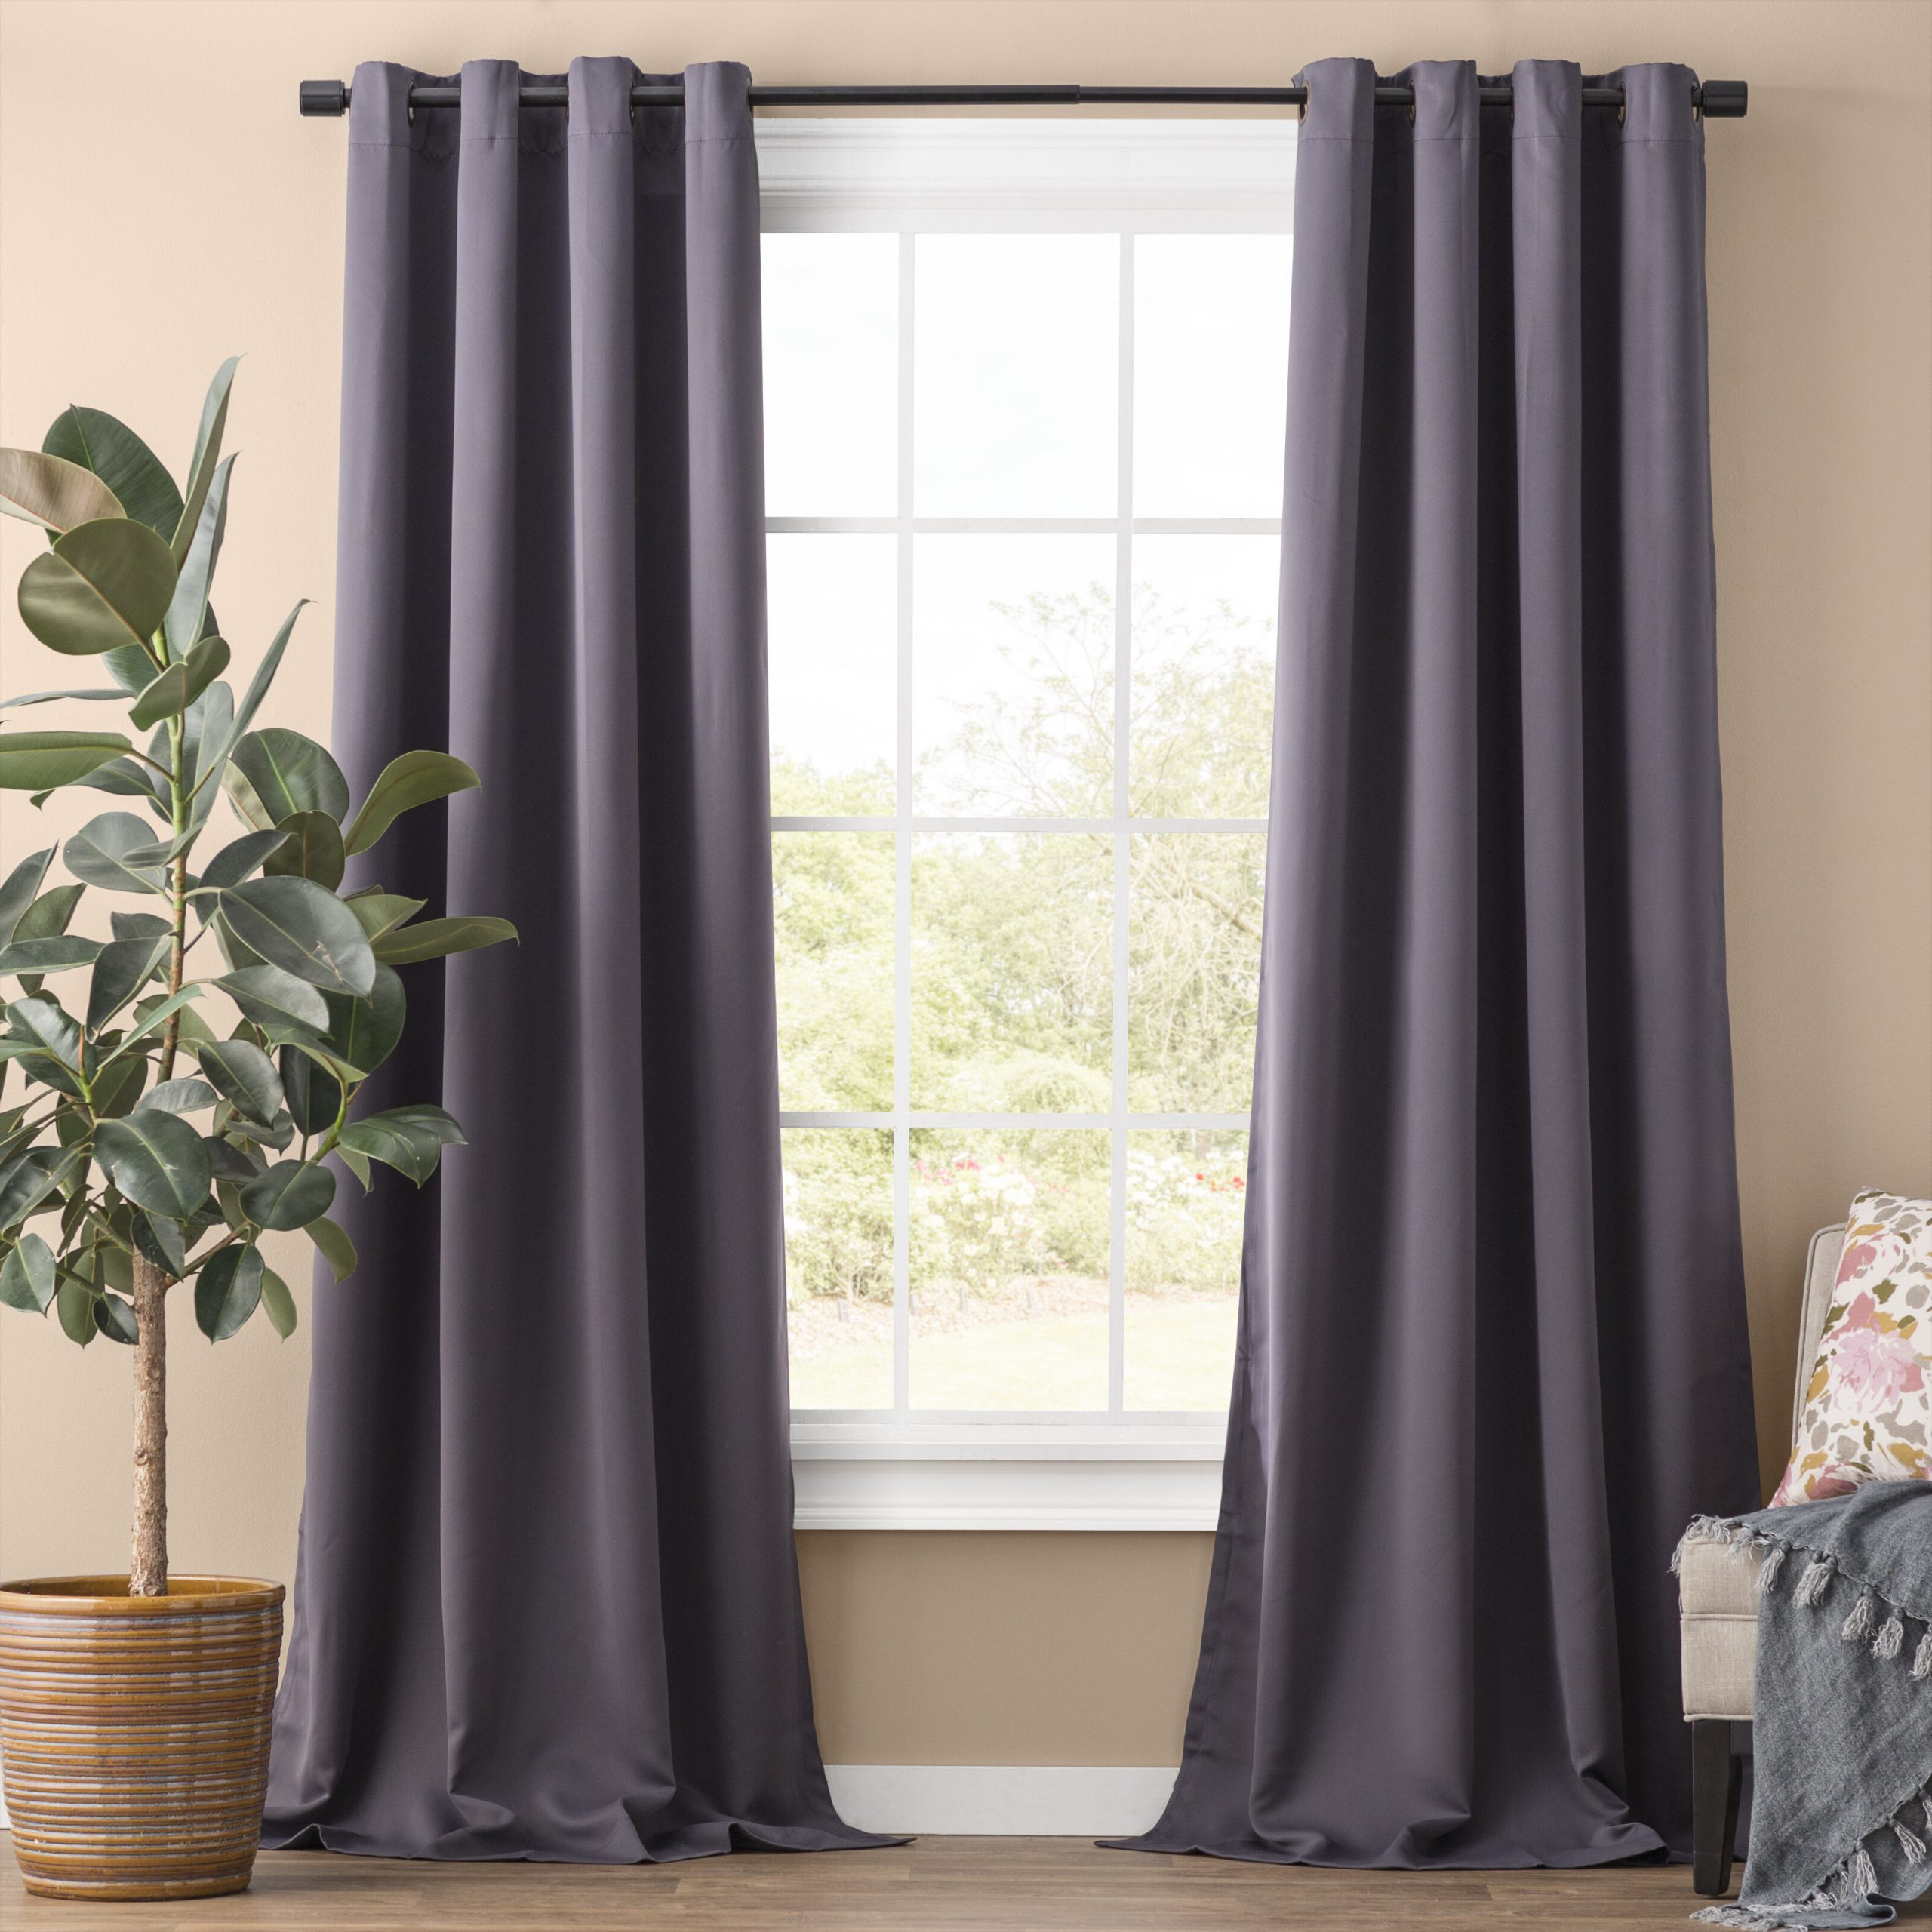 Recent Solid Insulated Thermal Blackout Long Length Curtain Panel Pairs Inside Solid Blackout Thermal Grommet Curtain Panels & Reviews (View 14 of 20)